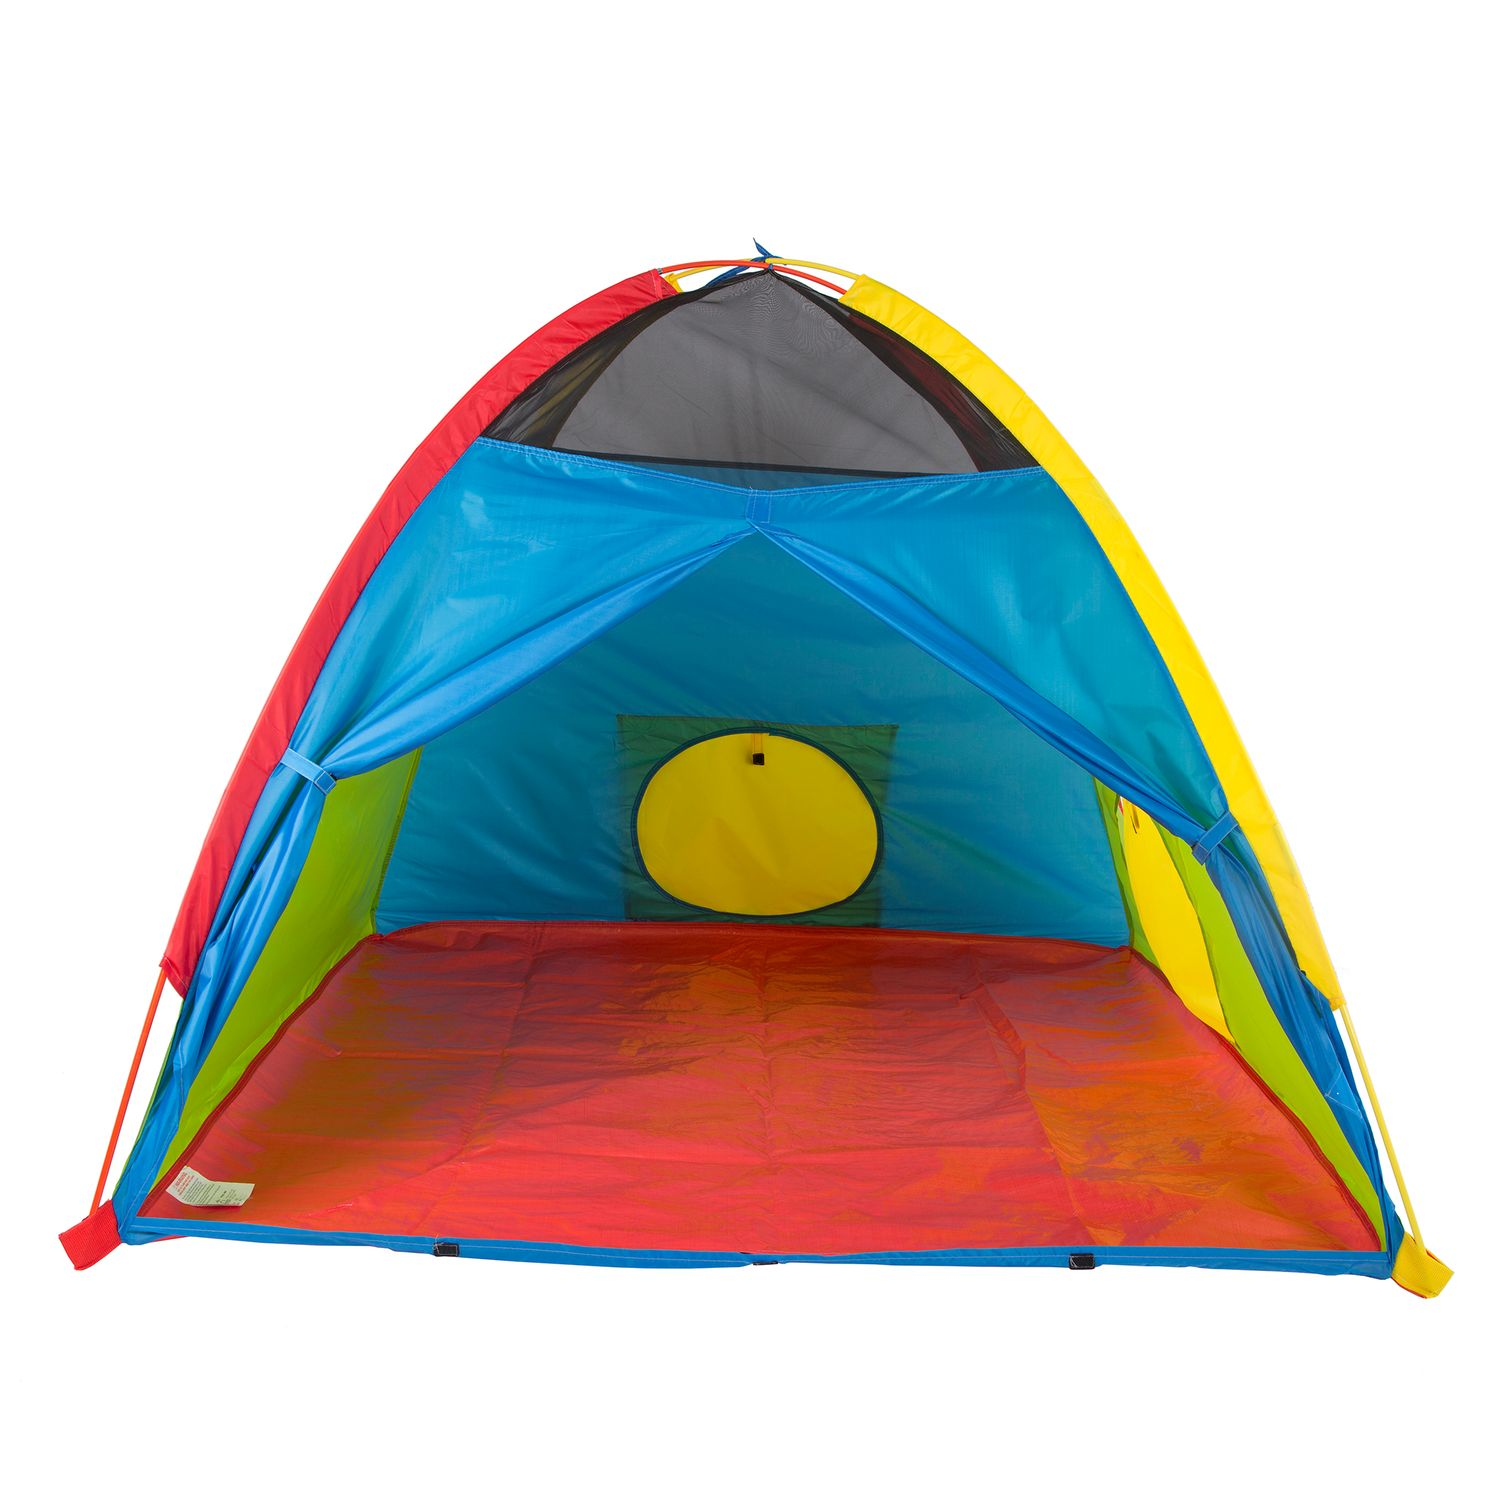 Pacific Play Tents Super Duper 4-Kid Tent  sc 1 st  Kohlu0027s & Boys Play Tents u0026 Tunnels - Outdoor Play Toys Toys | Kohlu0027s